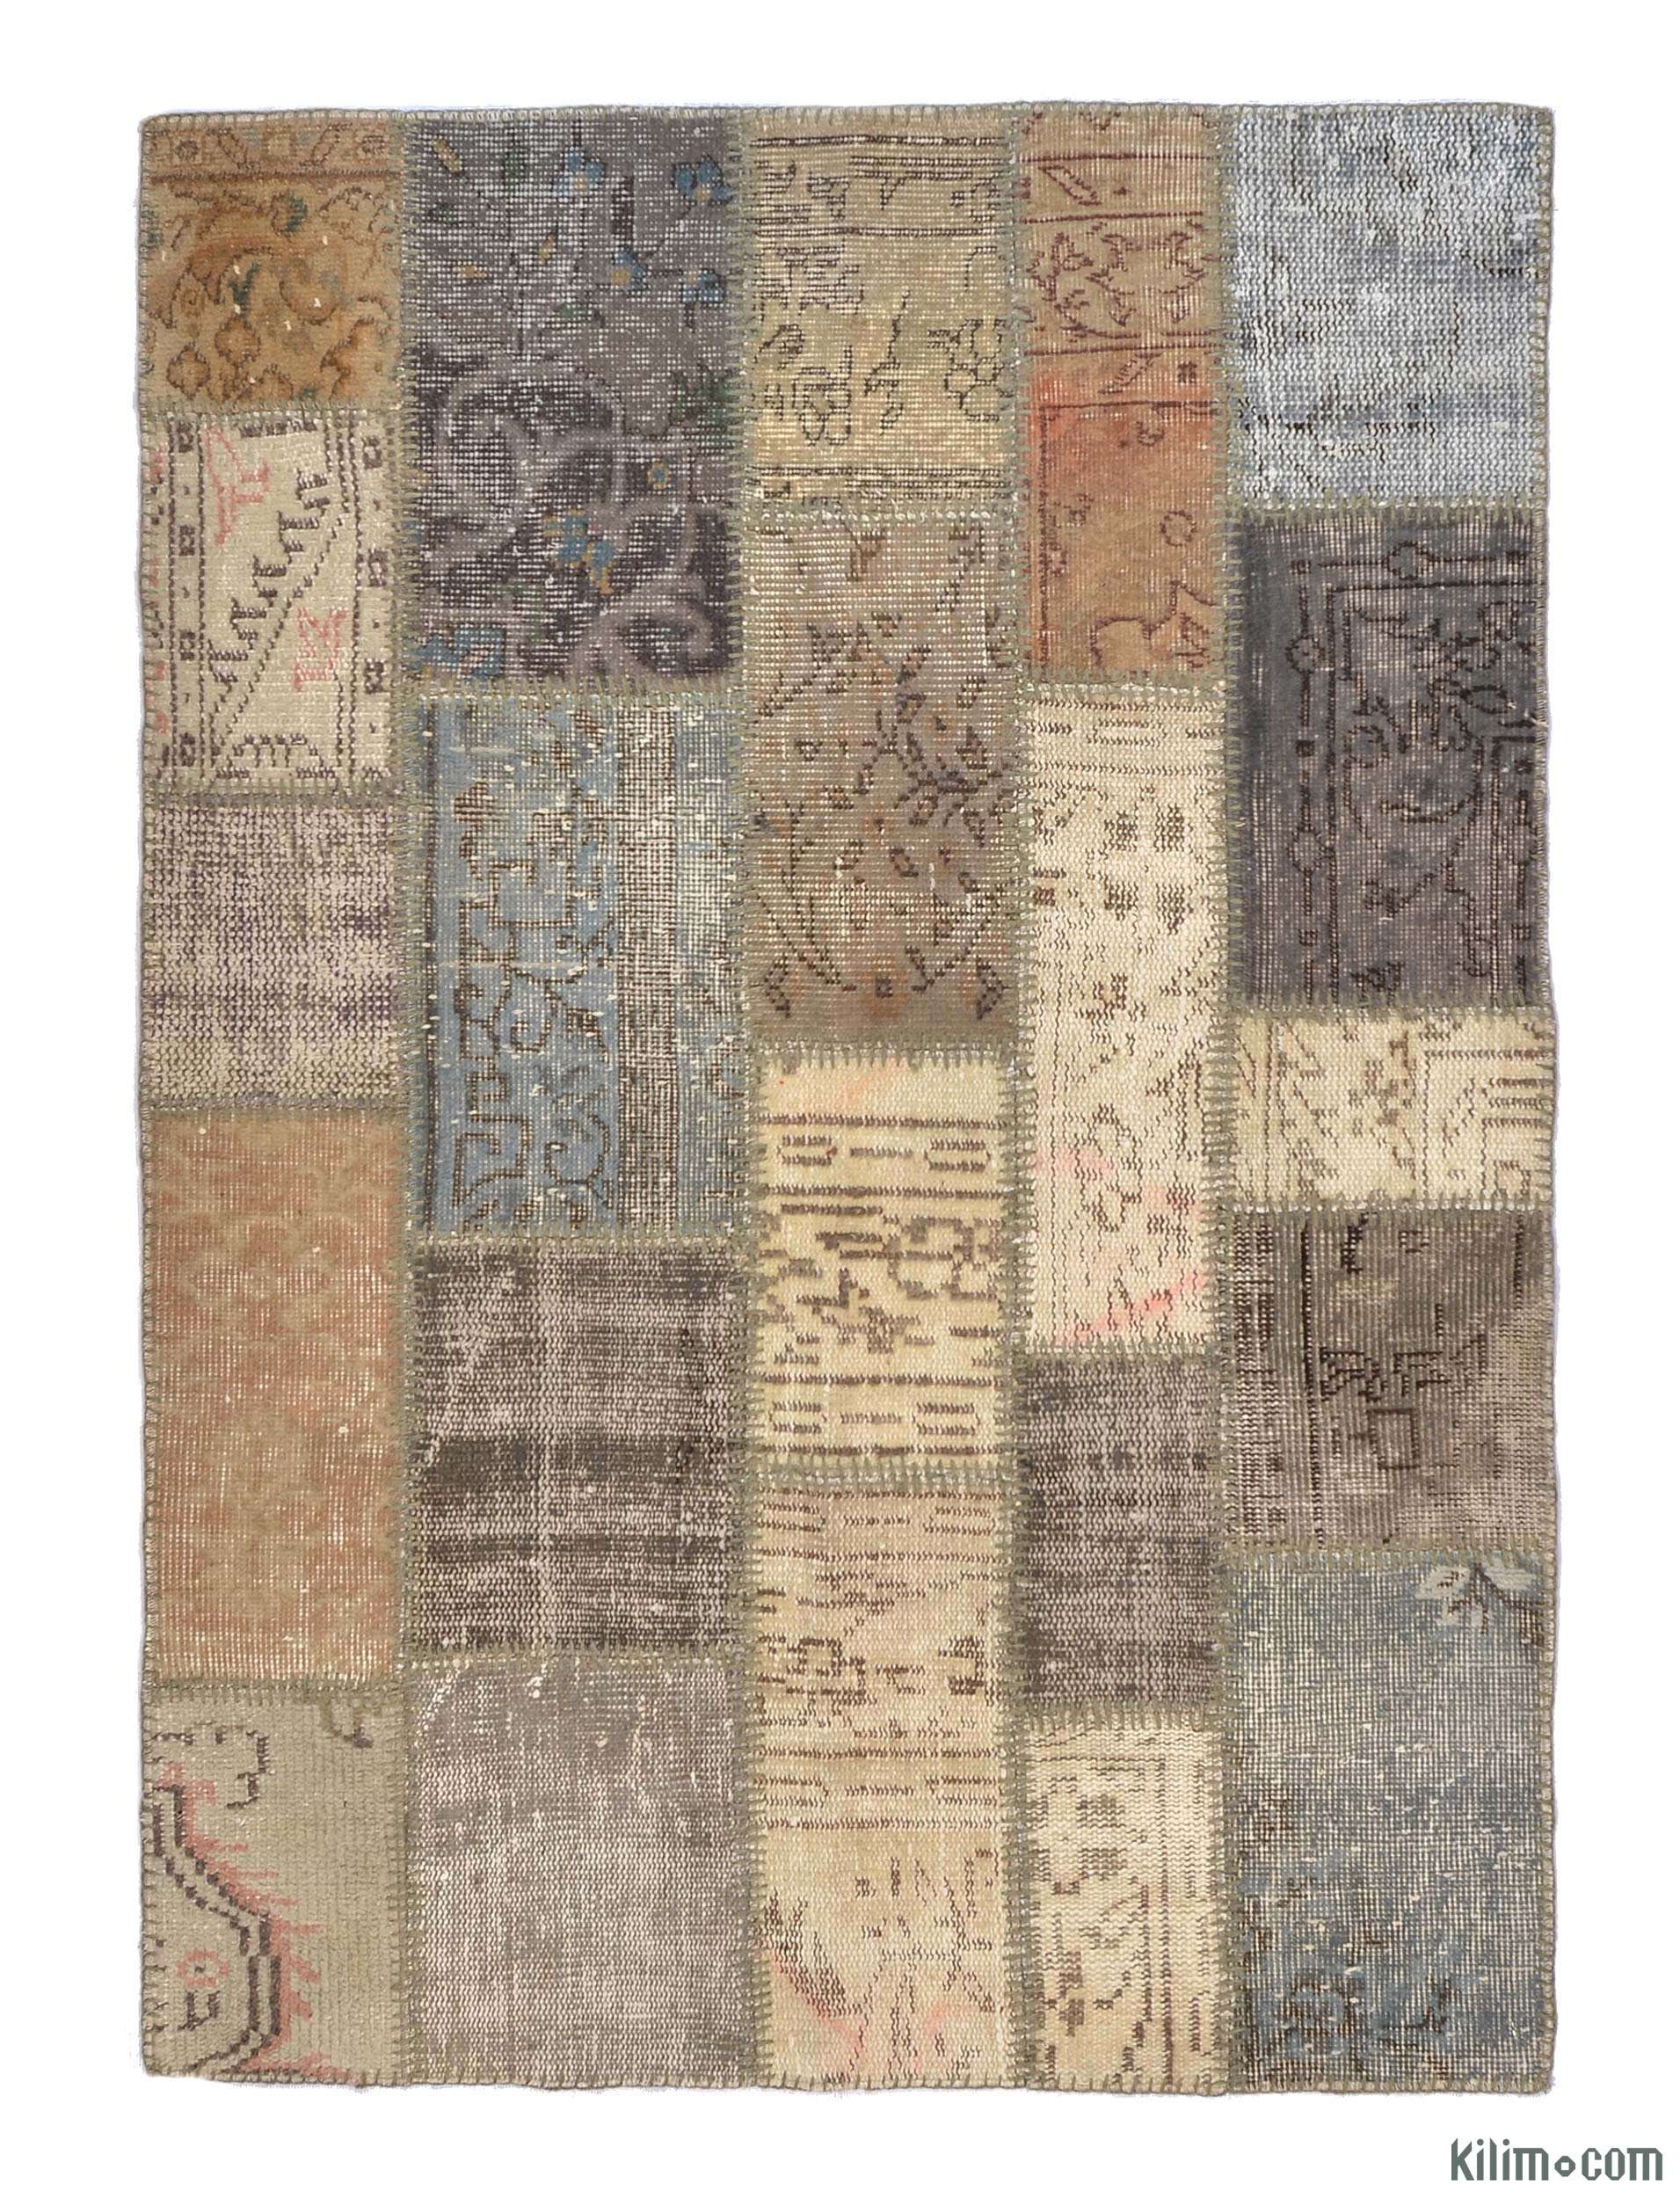 overdyed patchwork rugs kilim rugs overdyed vintage rugs hand made turkish rugs patchwork. Black Bedroom Furniture Sets. Home Design Ideas